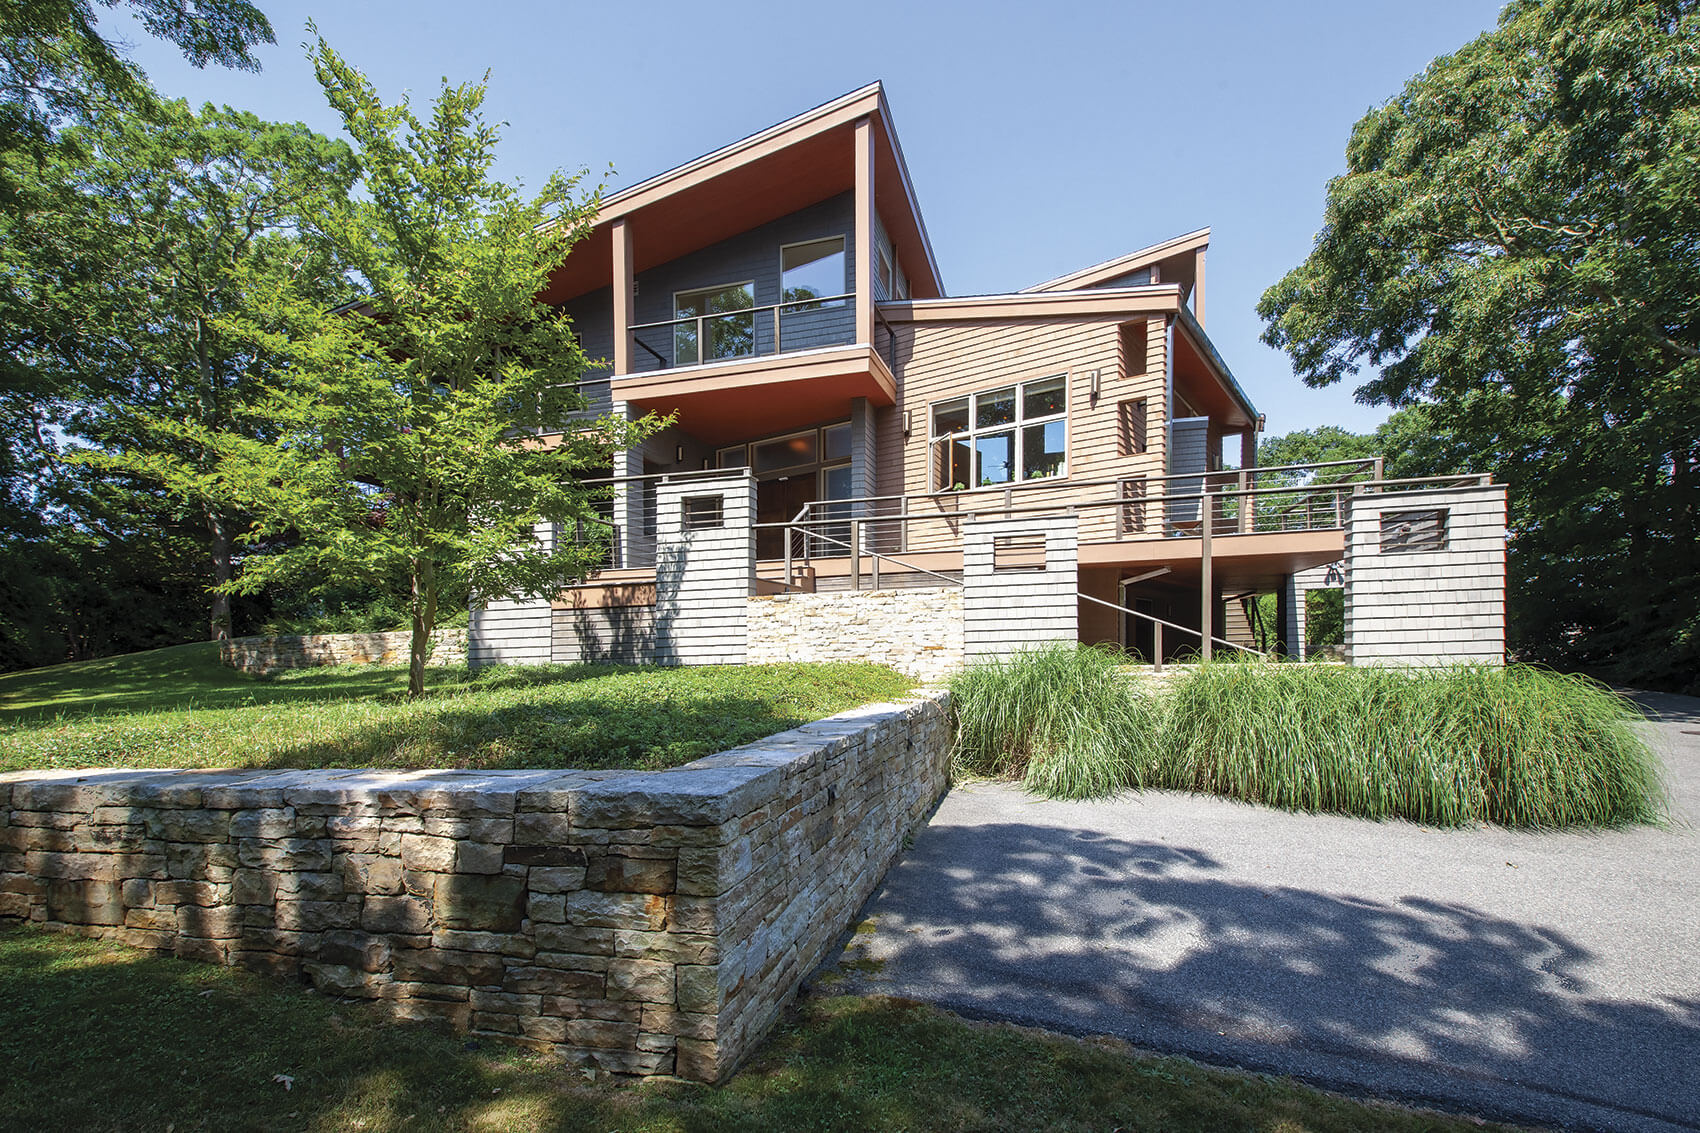 An exceptional five bedroom, 4,530 square-foot home sitting atop the highest point at the Sippewissett Highlands.